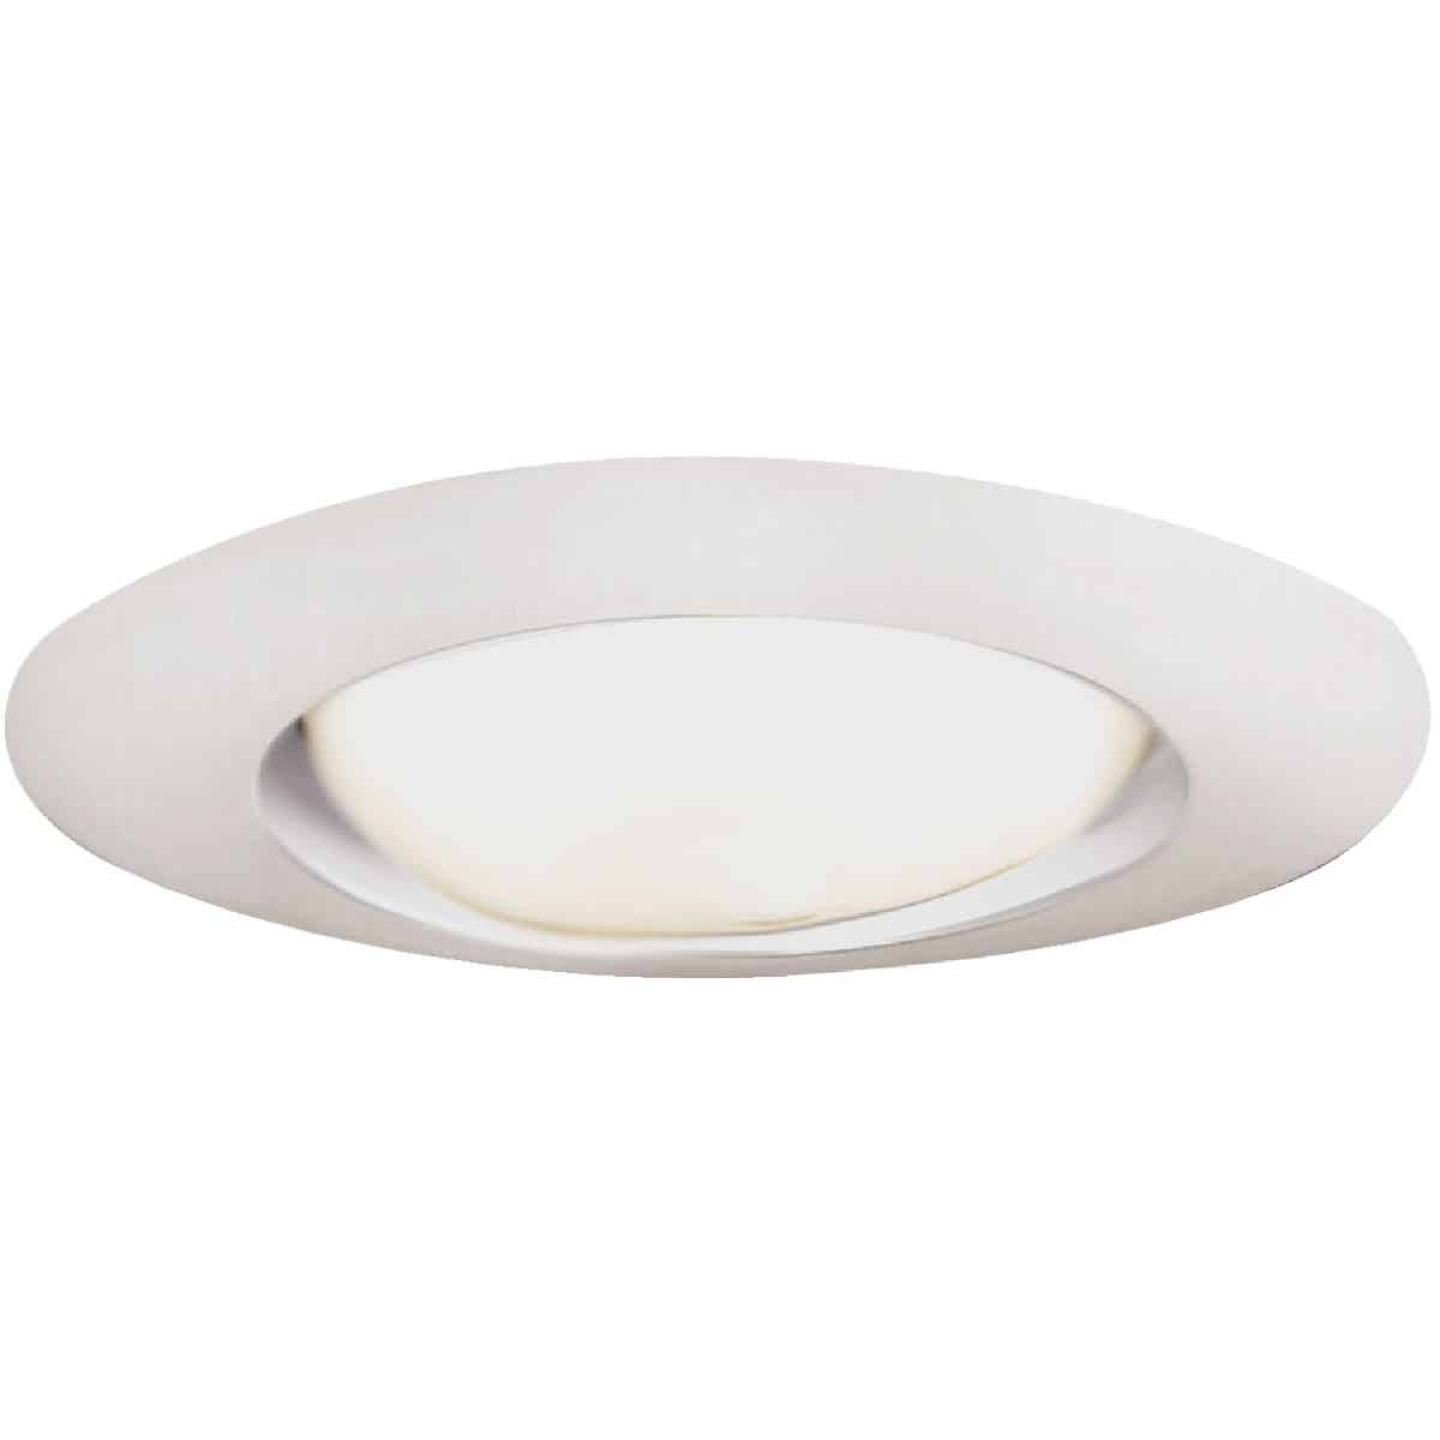 Halo 6 In. White Open Recessed Fixture Trim Image 1